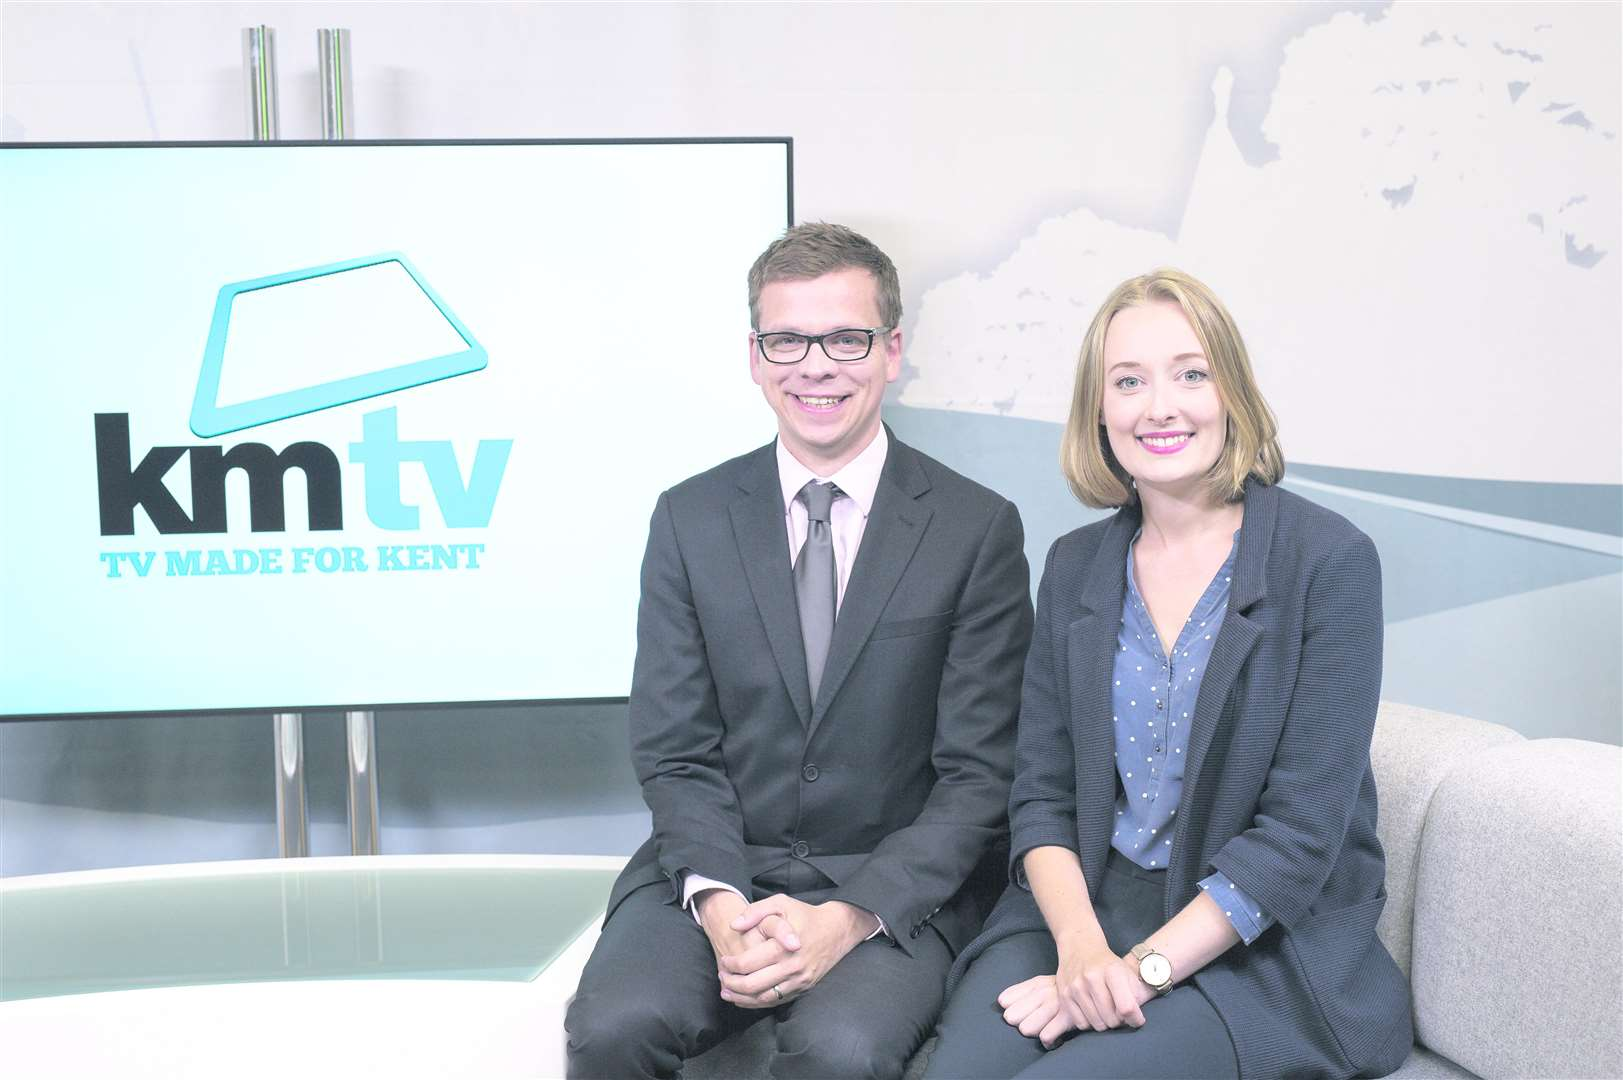 KMTV's Andy Richards and Louisa Britton